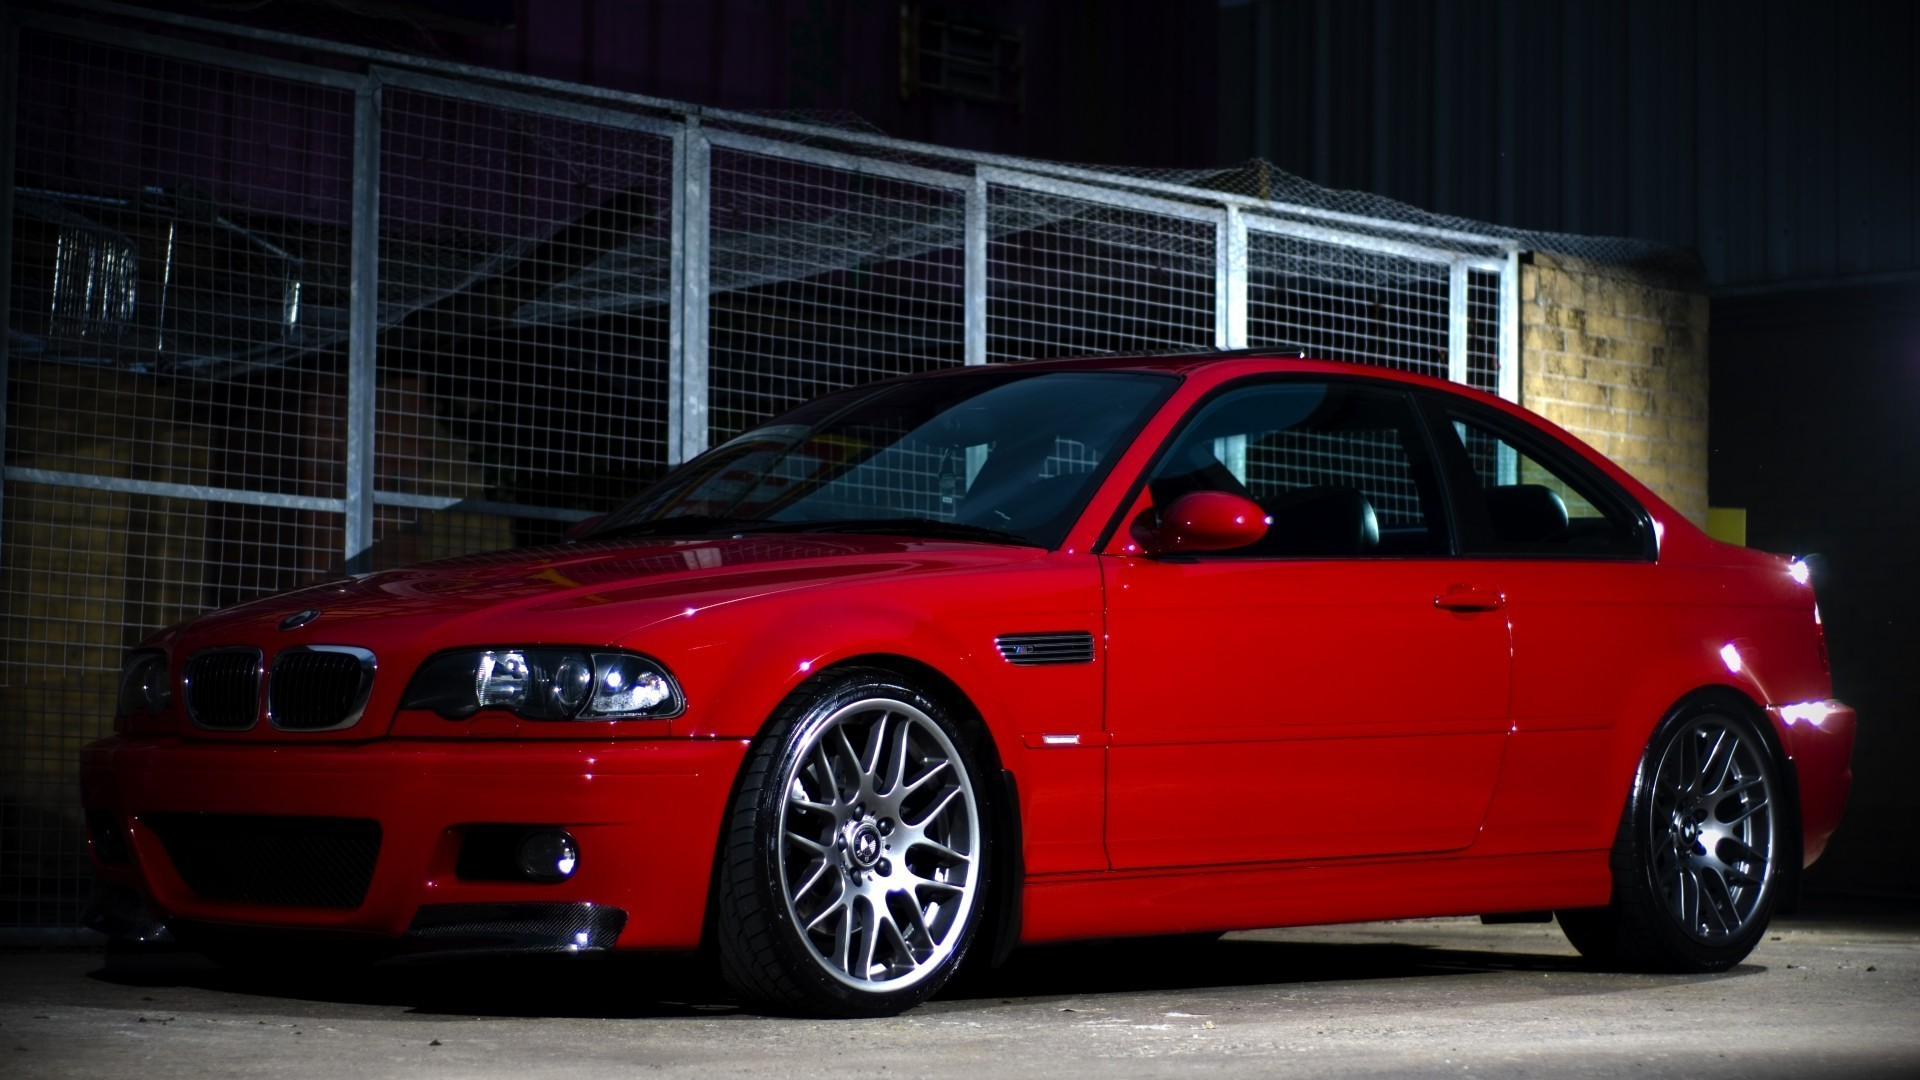 Bmw m3 e46 cars wallpaper allwallpaper 14094 pc en bmw m3 e46 cars wallpaper voltagebd Gallery